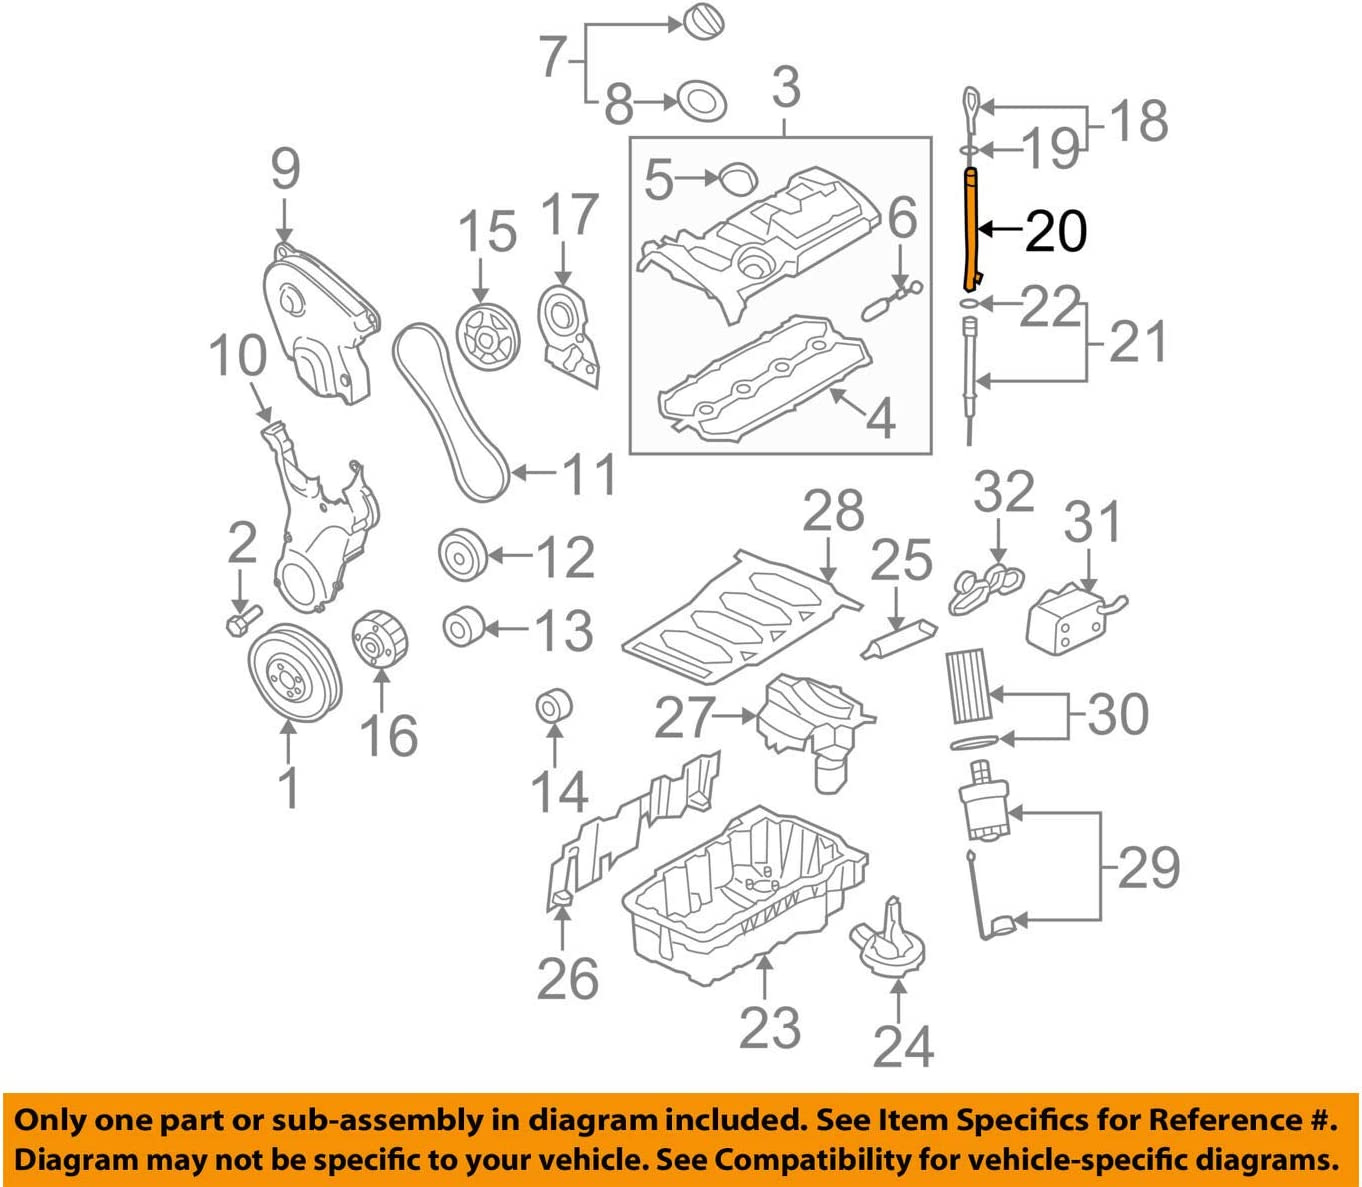 2007 vw passat engine diagram - wiring diagram bell-setup -  bell-setup.cinemamanzonicasarano.it  cinemamanzonicasarano.it